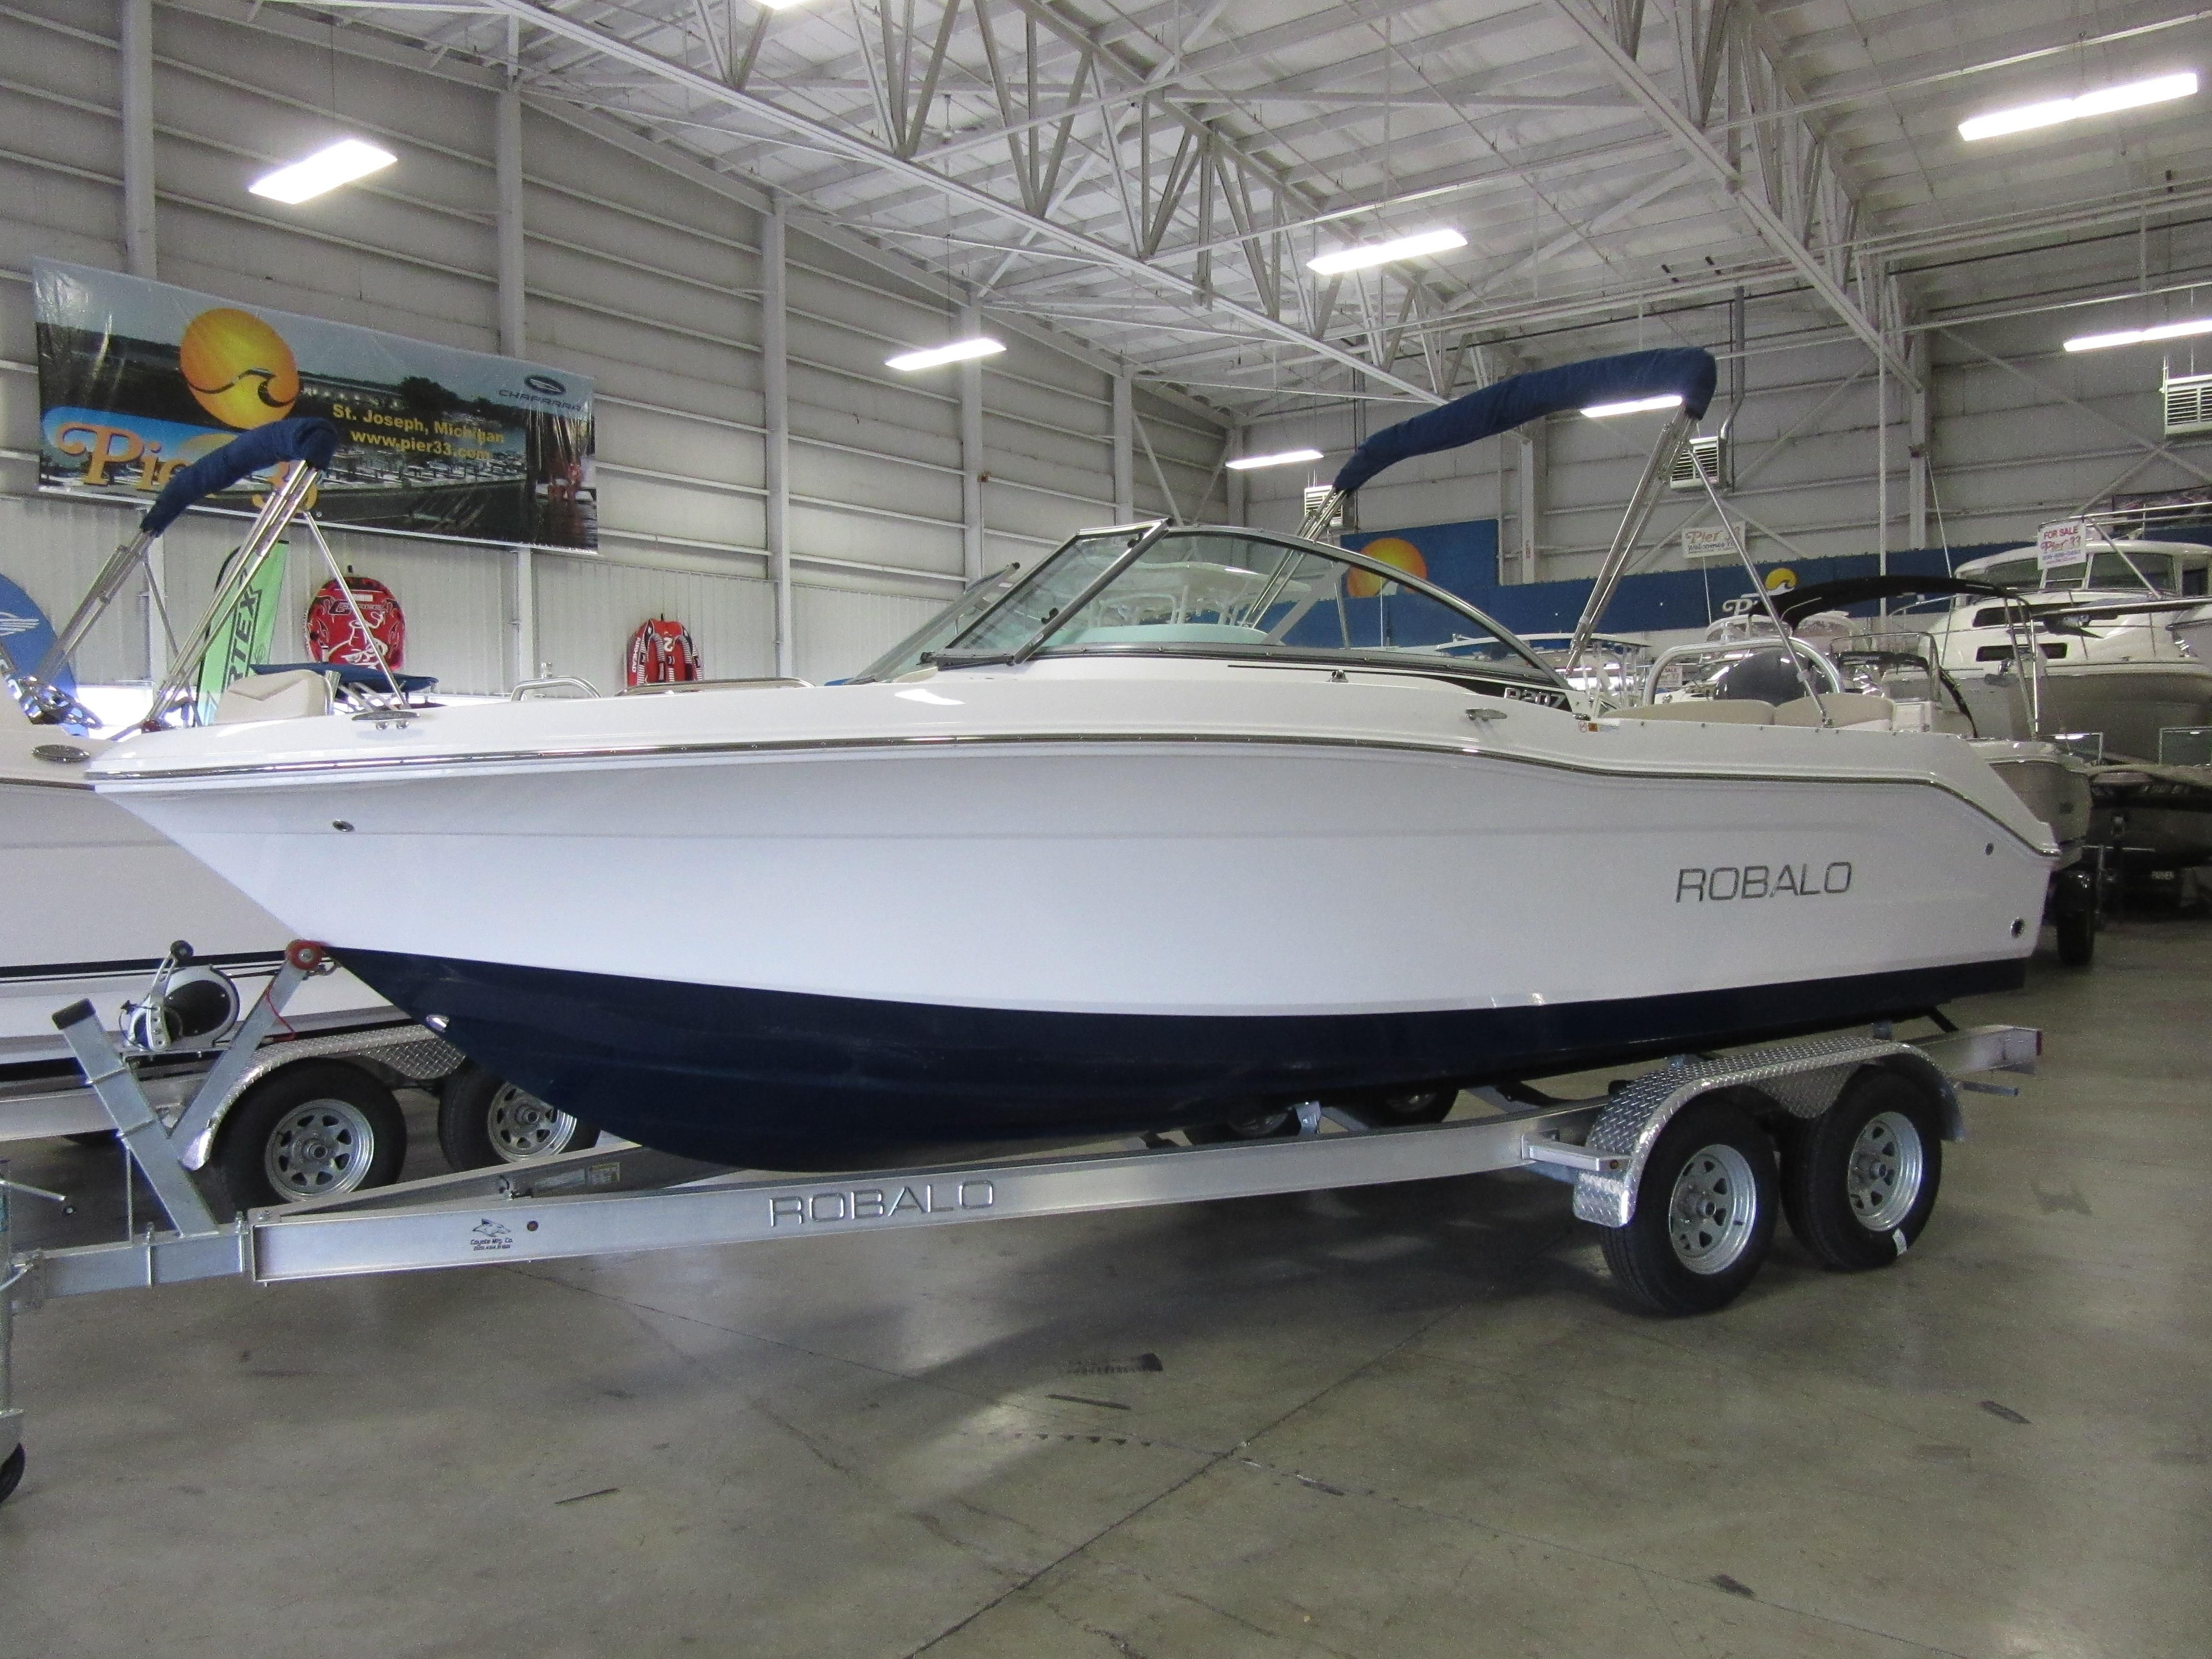 2017 robalo r207 dual console power boat for sale www for Robalo fish in english